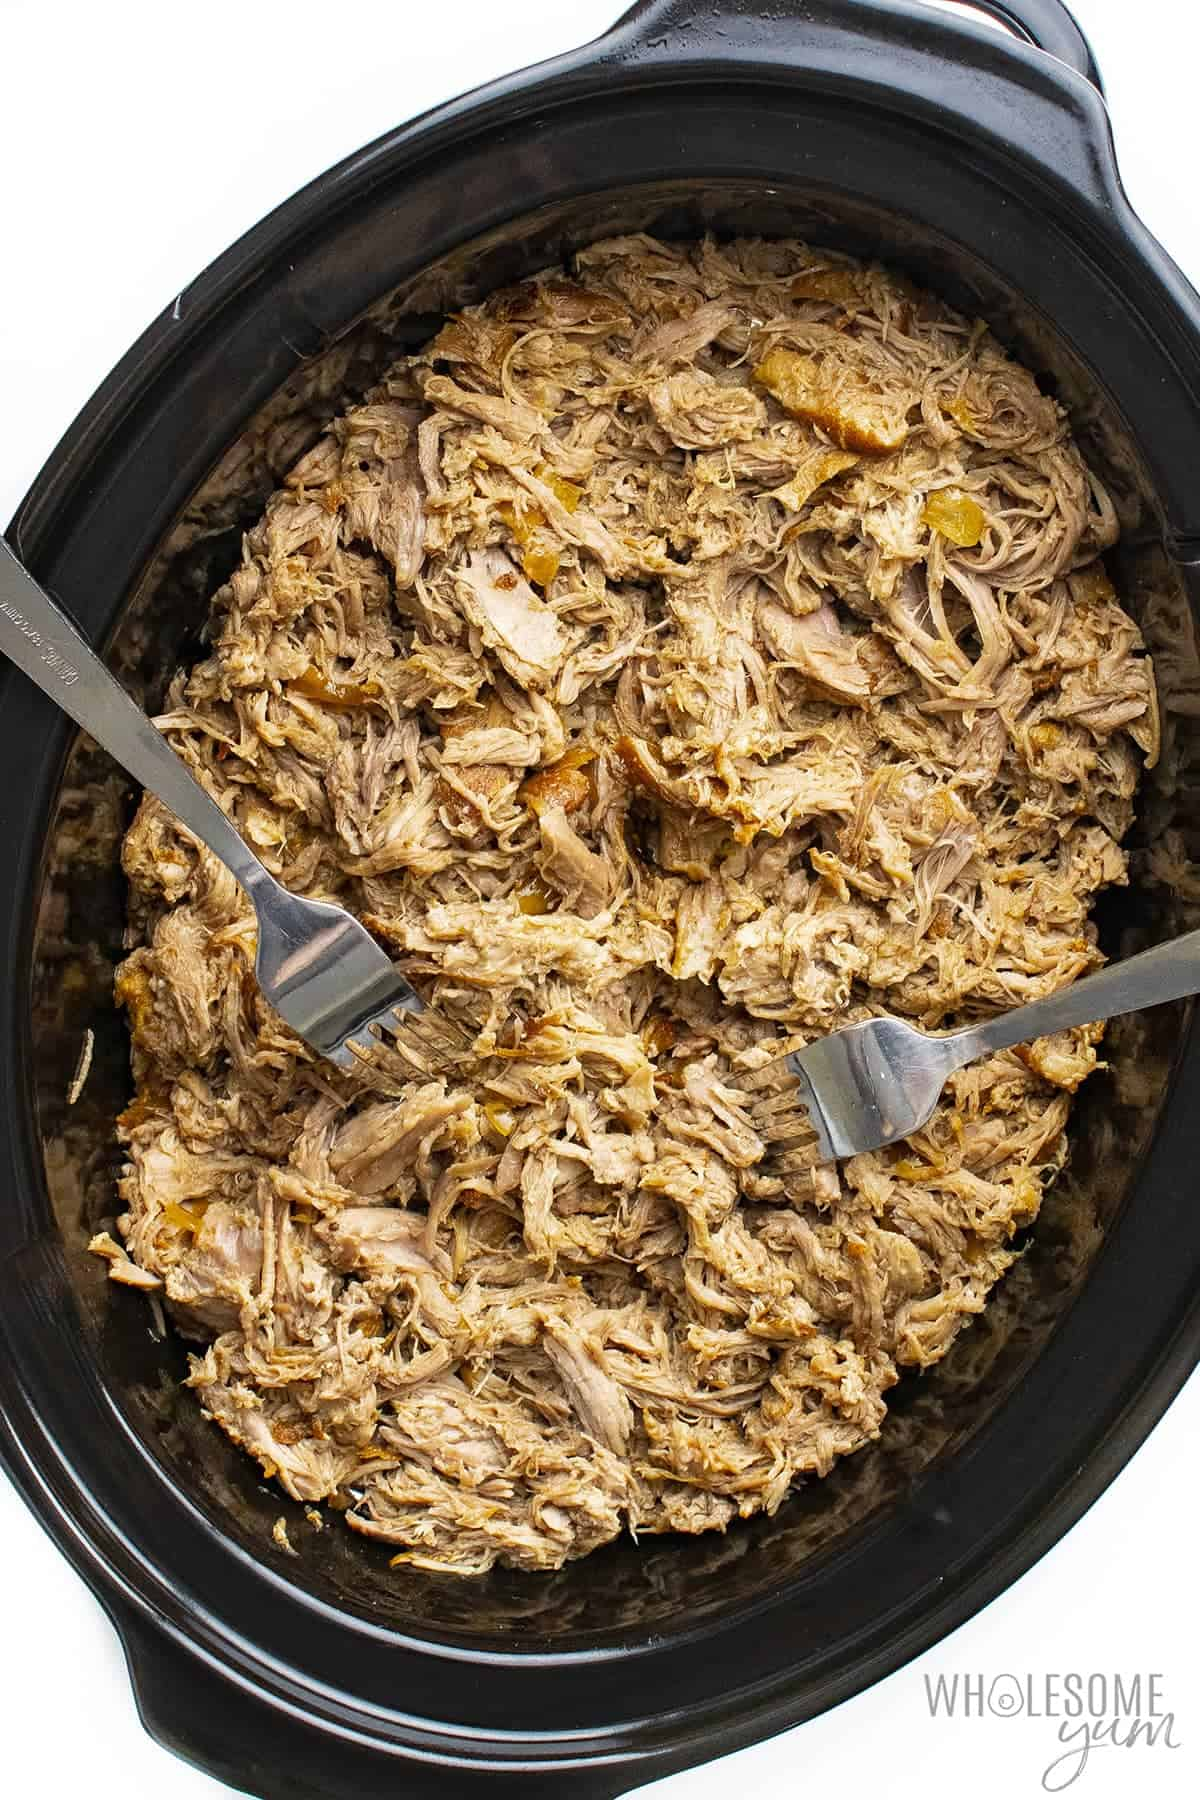 Finished pulled pork recipe in slow cooker with forks